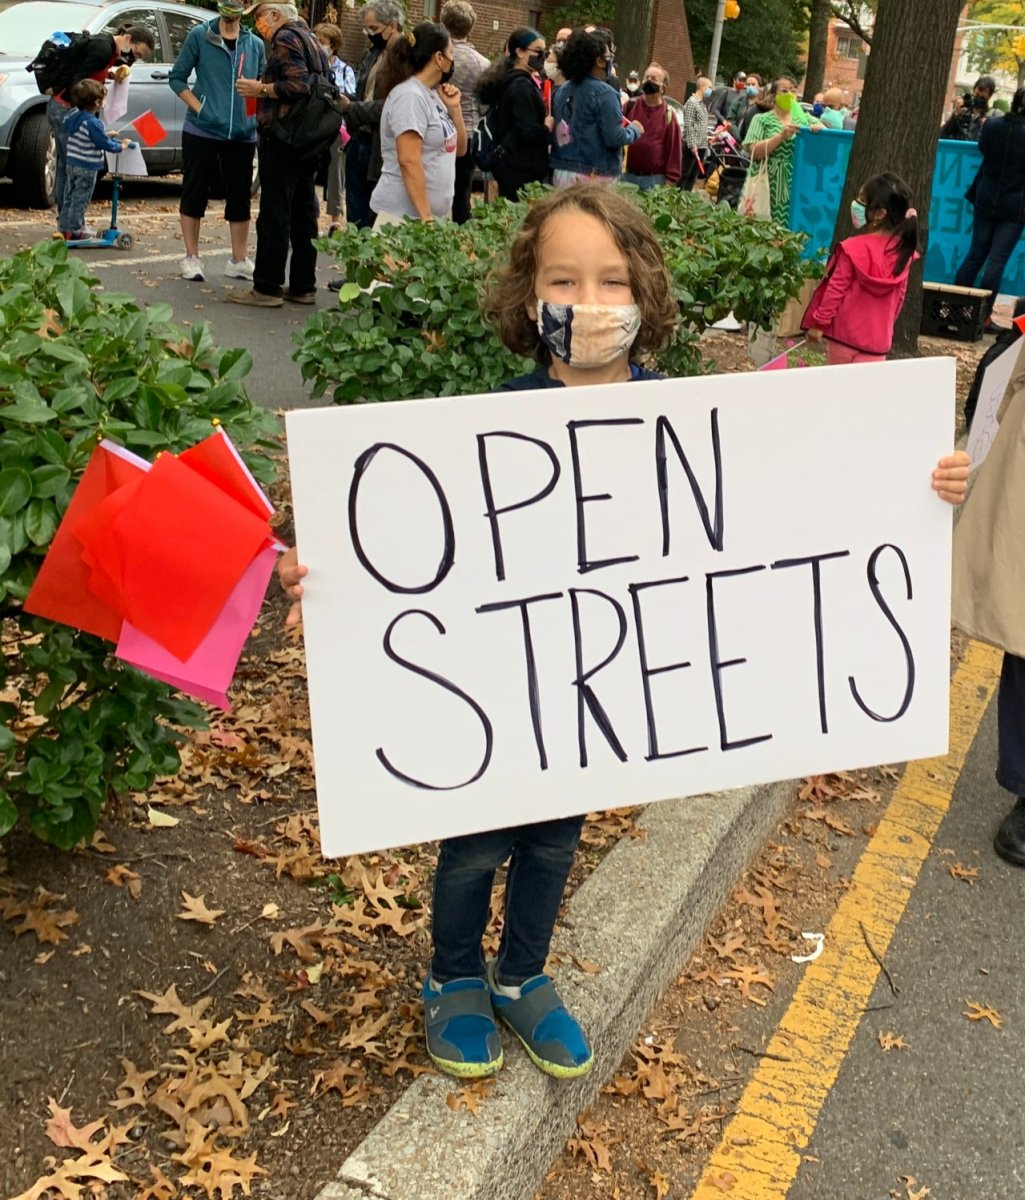 large.open-street-kid-sign-visa-news-ros